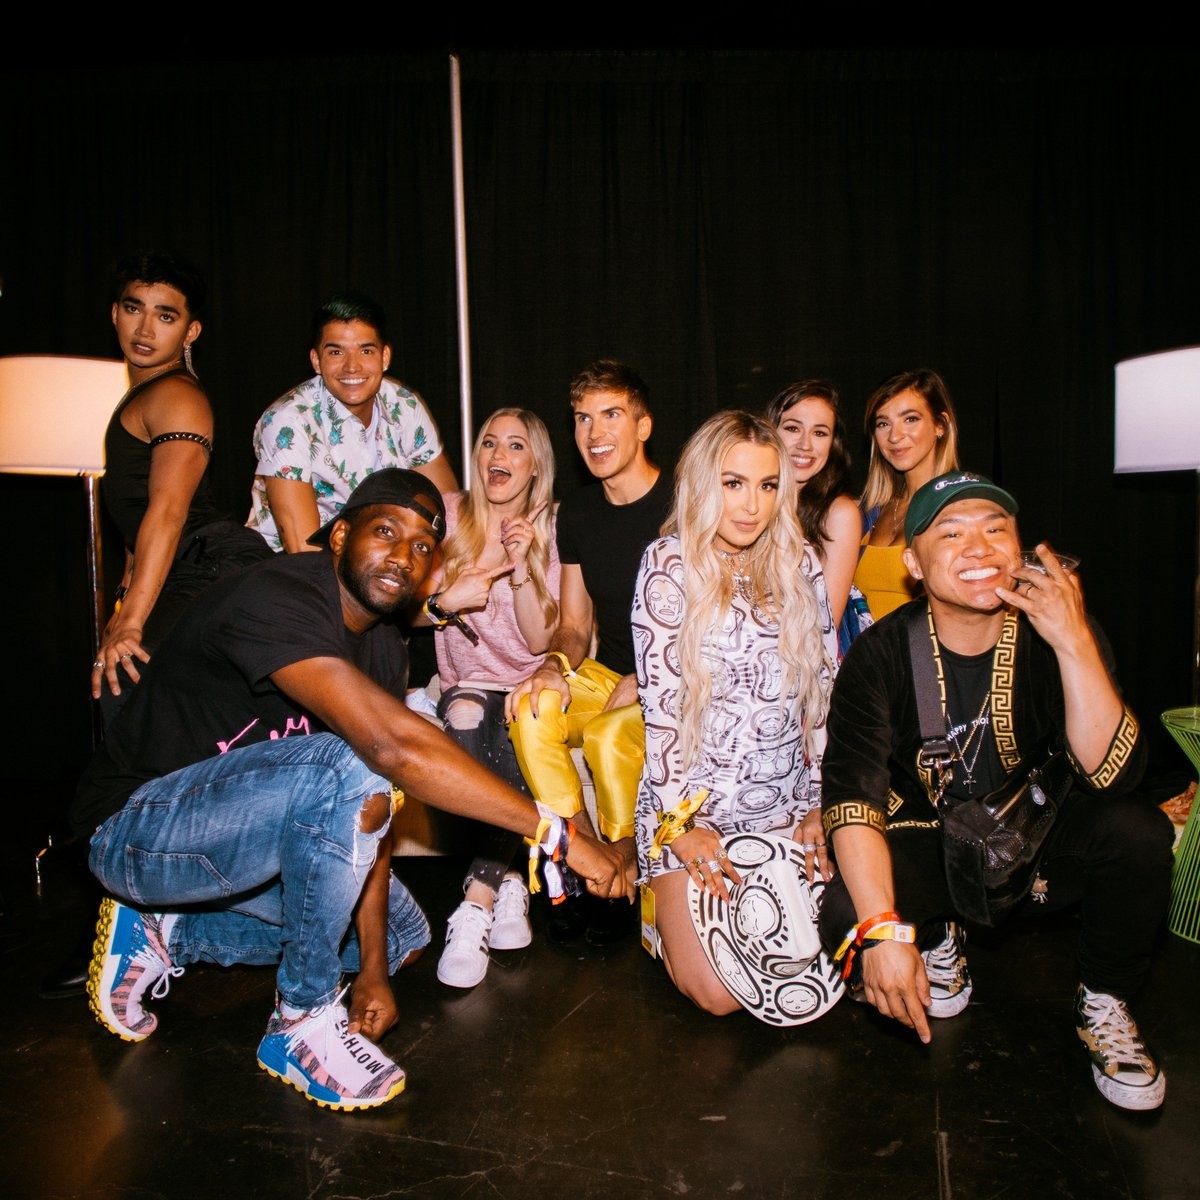 6a92141e3a Go behind the scenes at #VidConUS with some of your favorite creators and  follow along on our Instagram Story: http://www.instagram.com/youtube ...